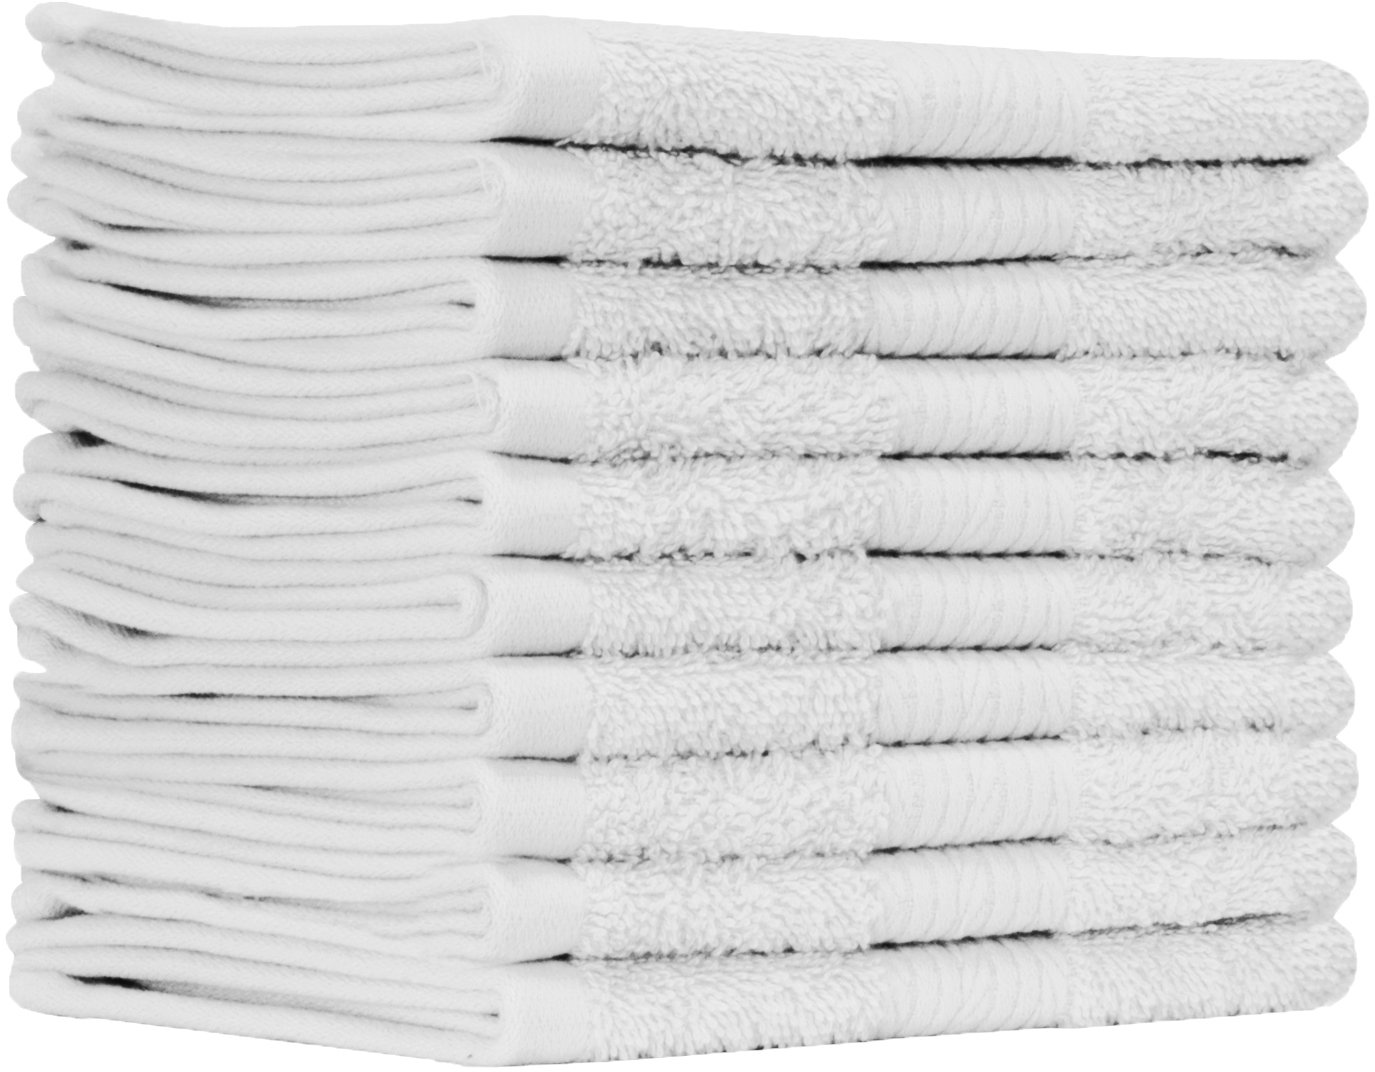 Ample Decor Luxury Washcloths for Bathroom-Hotel-Spa-Kitchen - 100% Organic Soft Cotton - Highly Absorbent Hotel Quality Face Towels - Bulk Set of 10 -WHITE